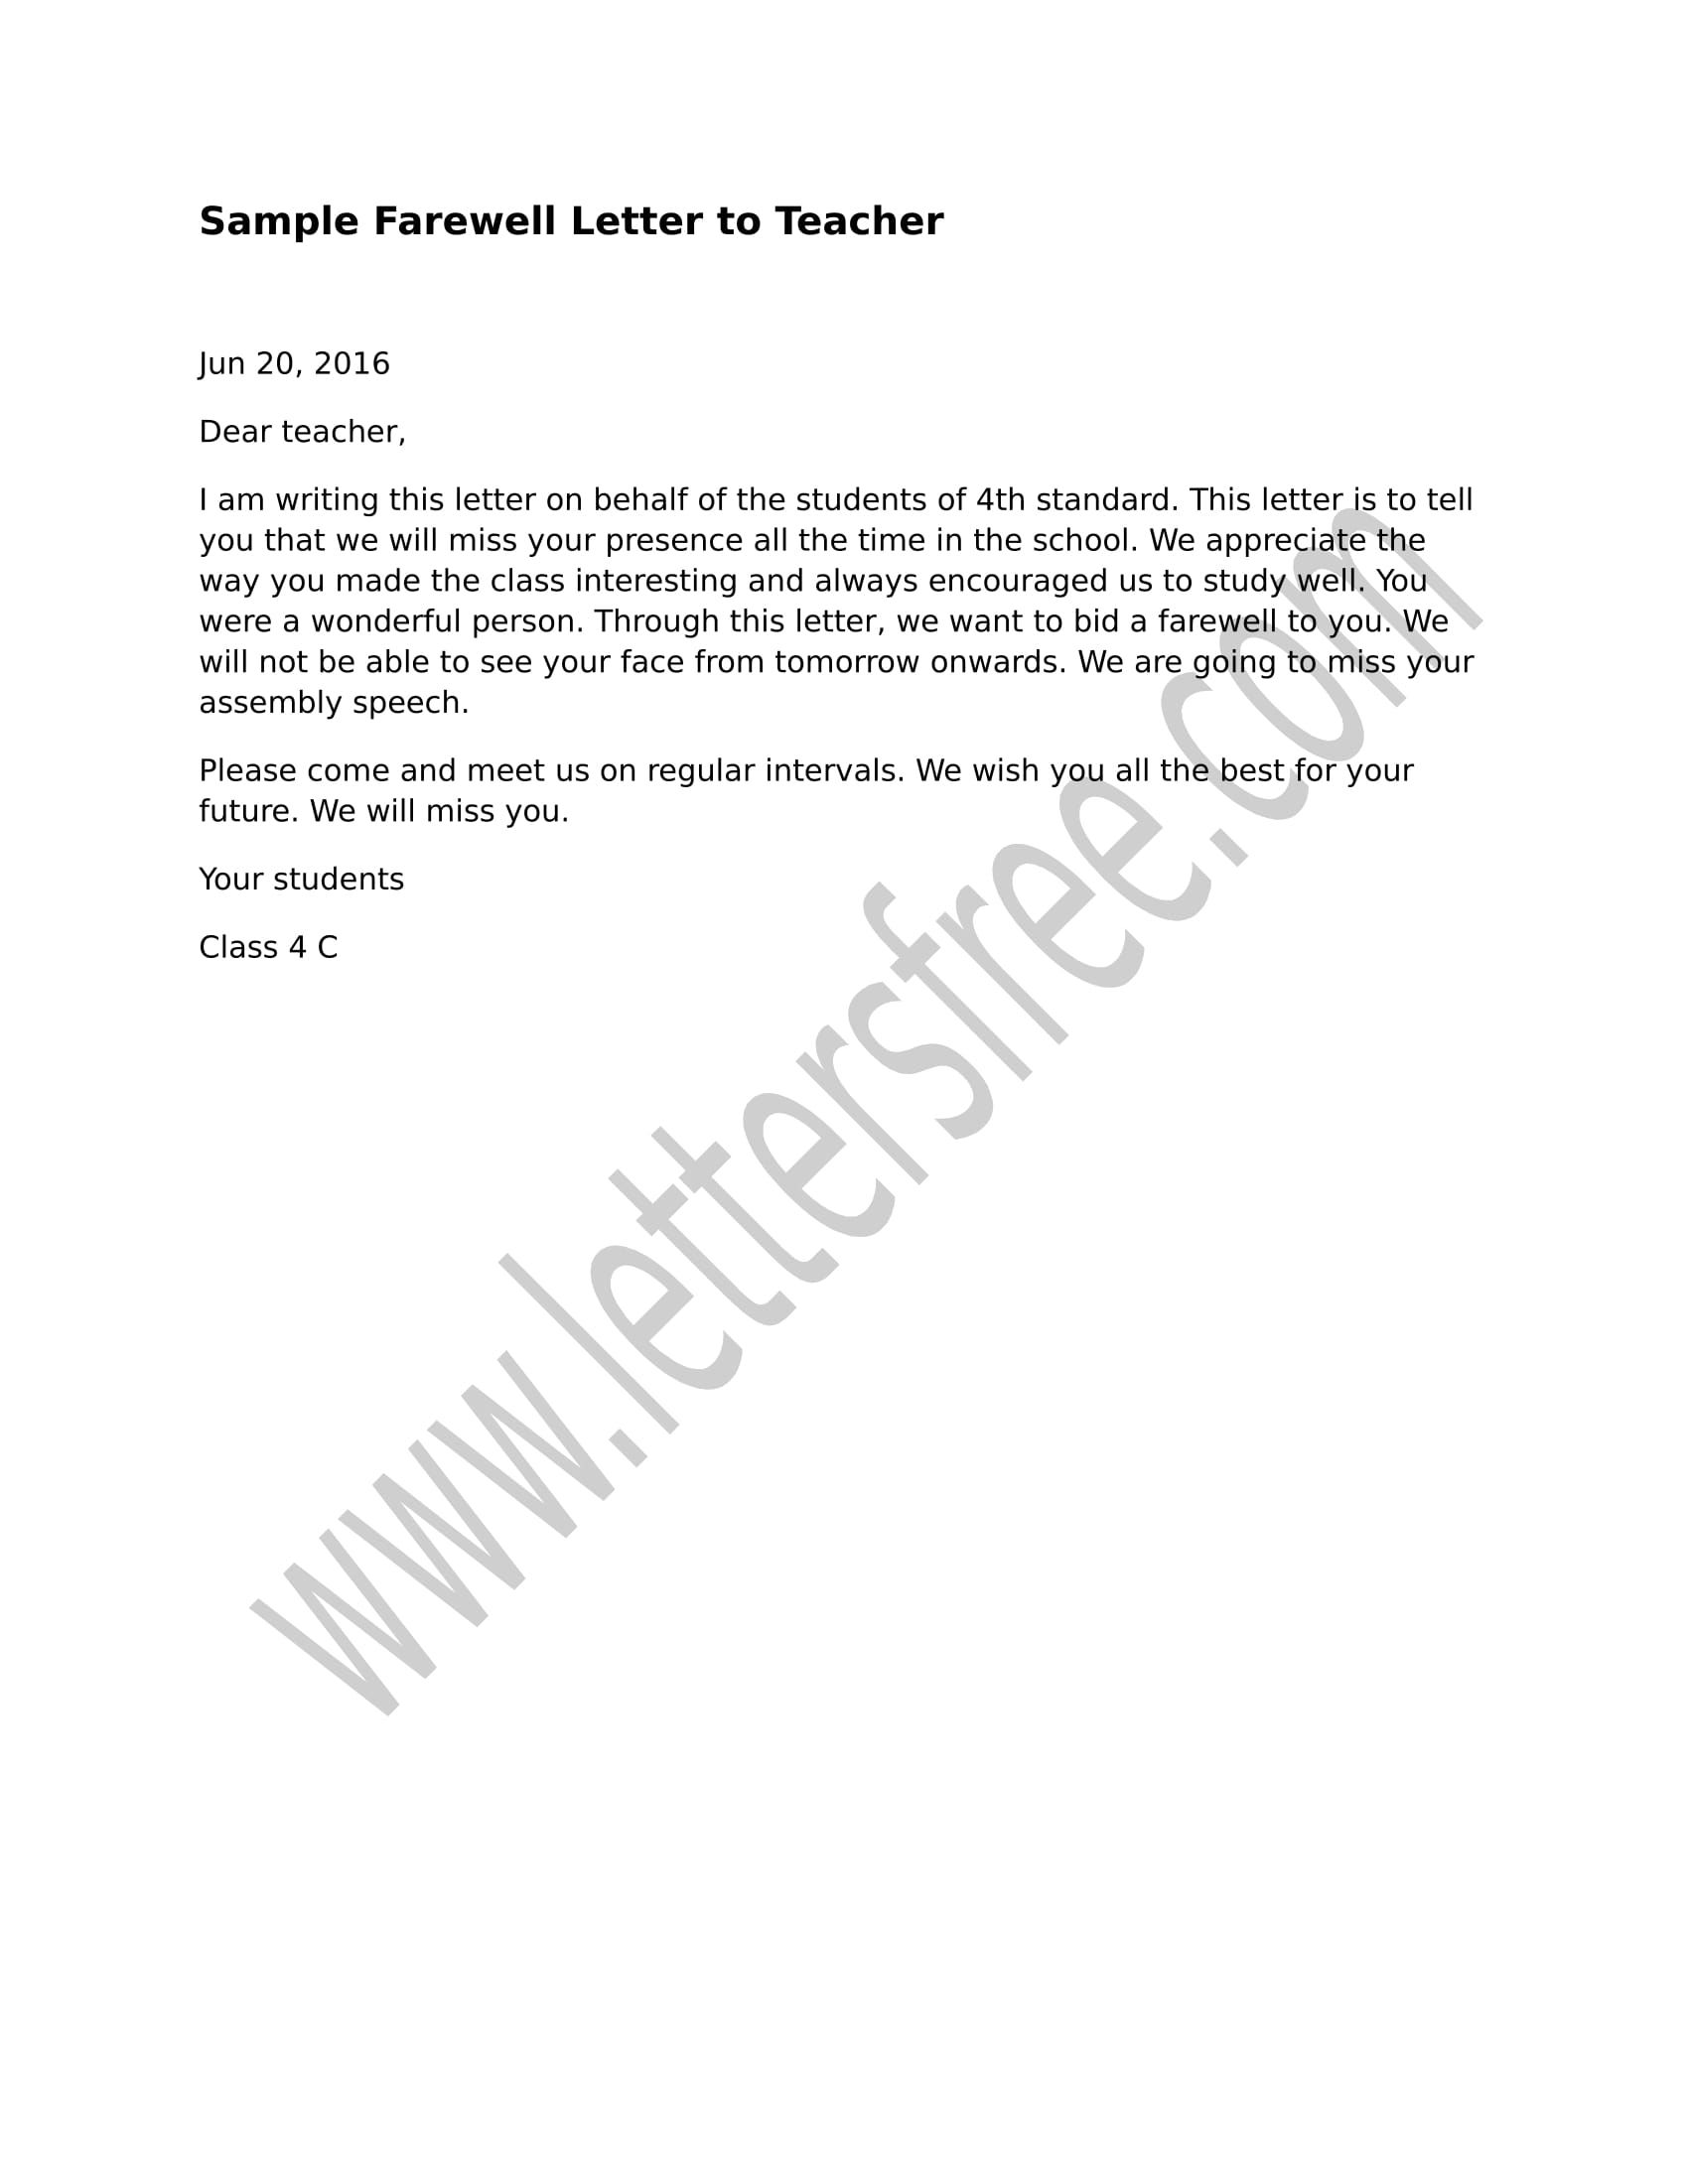 Farewell letter to teacher teacher sample farewell letter to teacher to pay thanks for sharing a sweet friendly bonding with them thecheapjerseys Image collections